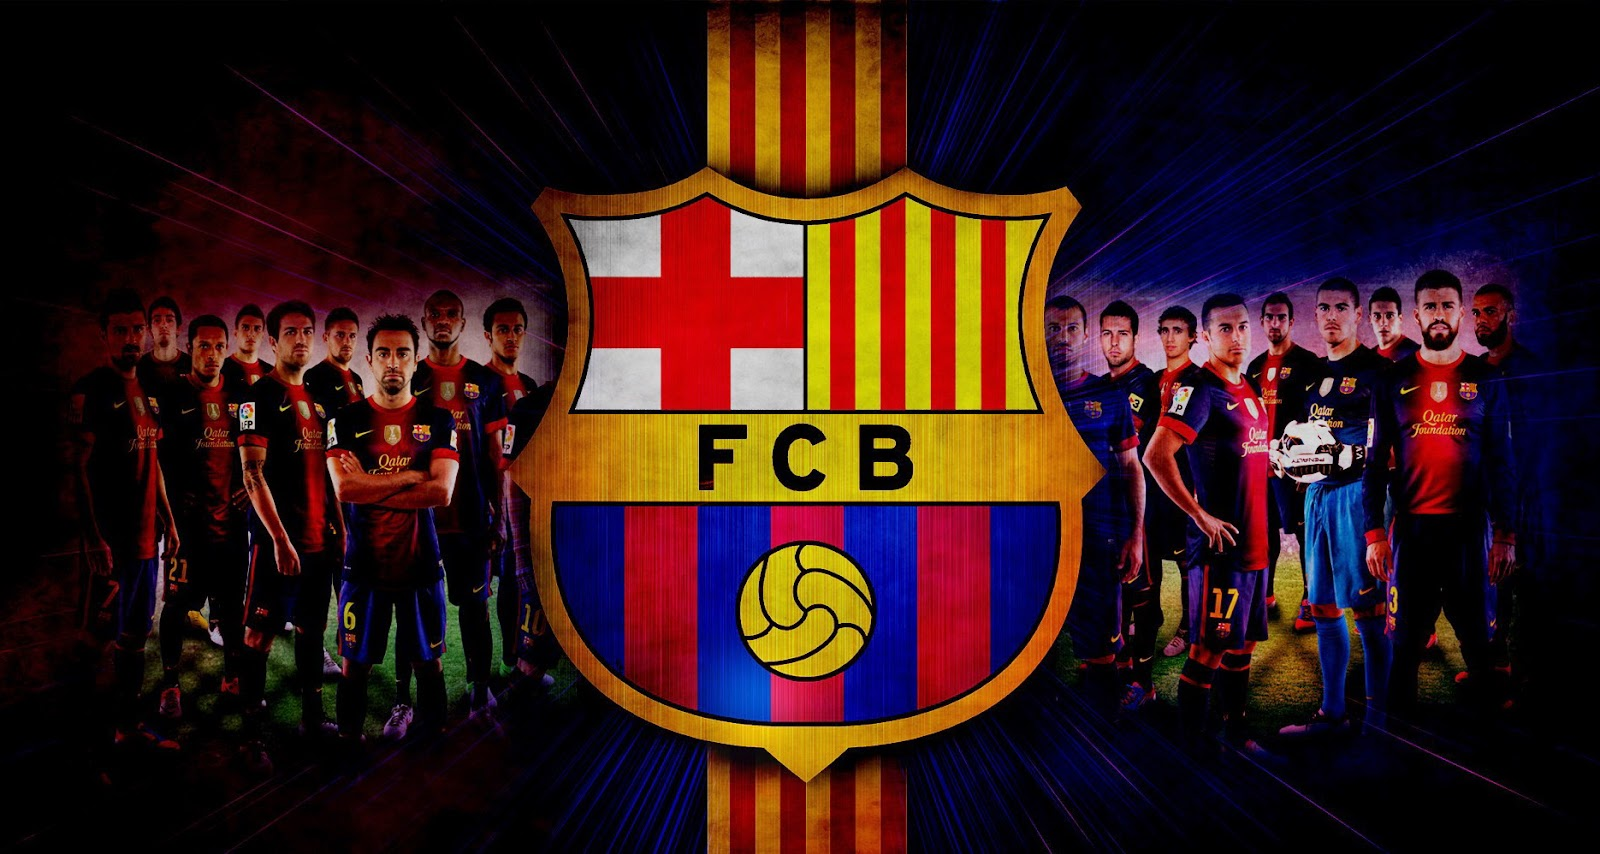 [50+] FC Barcelona Wallpapers HD 2016 on WallpaperSafari